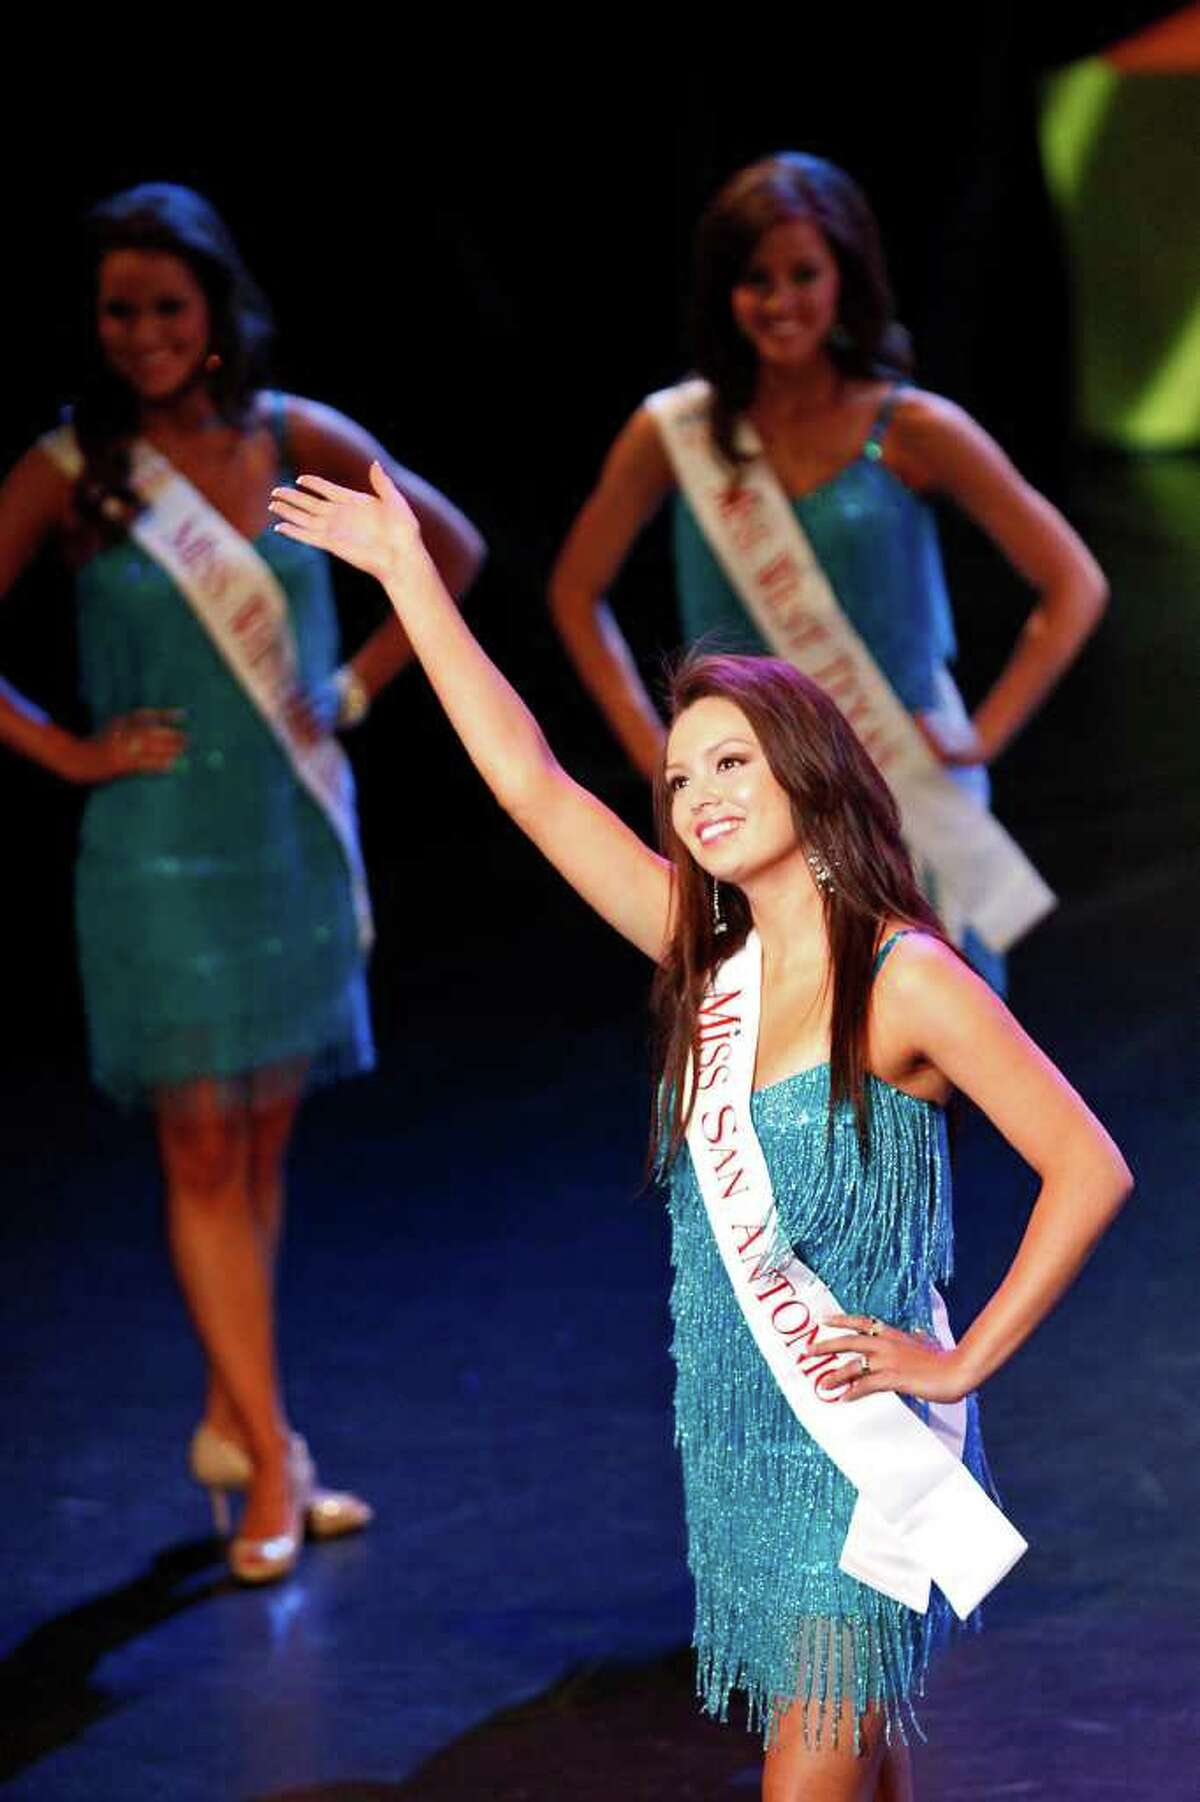 Miss San Antonio Domonique Ramirez is introduced during the first night of the Miss Texas Pageant preliminary competition at Texas Hall on the campus of the University of Texas at Arlington on June 28, 2011.